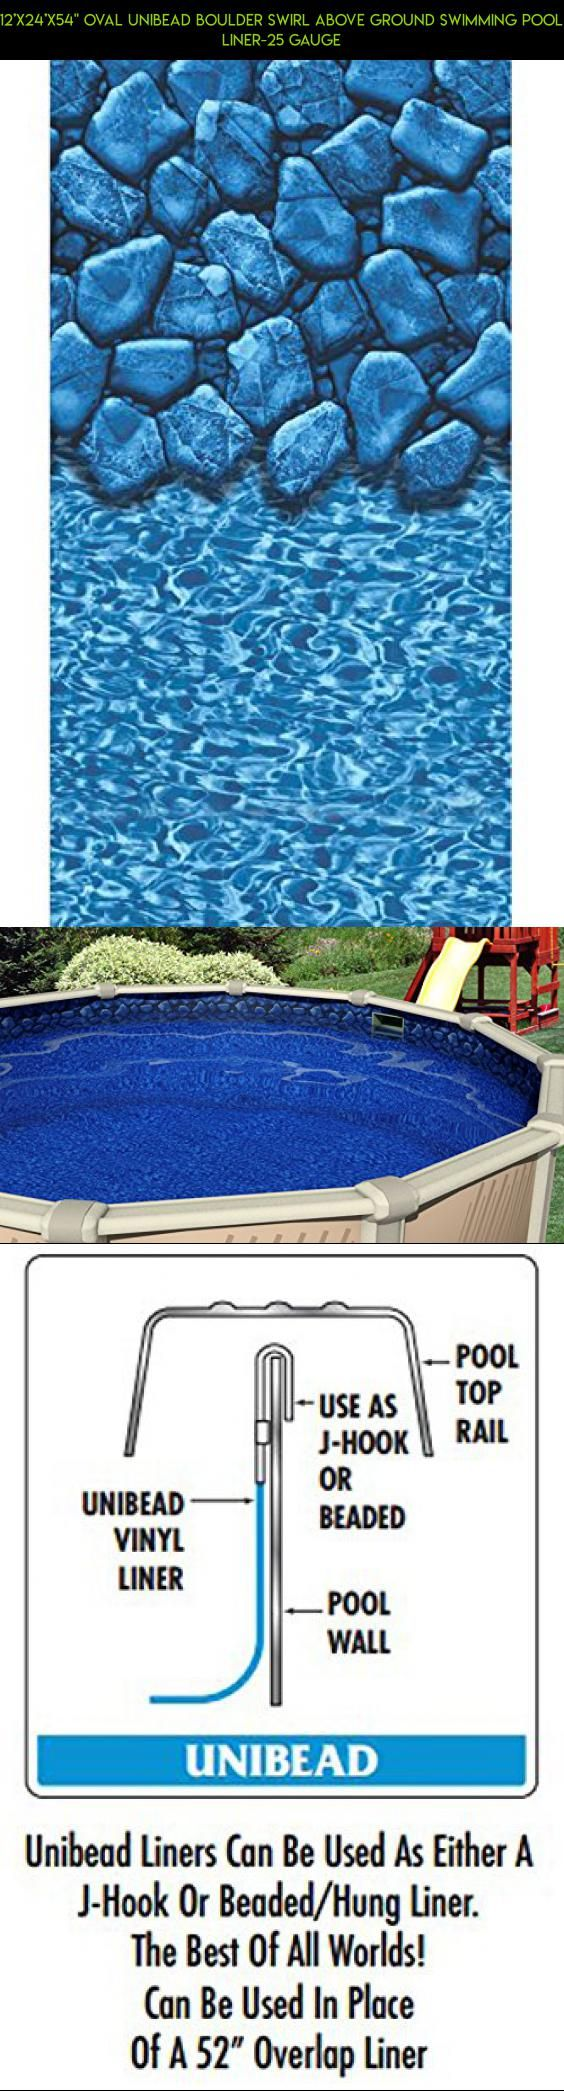 """12'x24'x54"""" Oval Unibead Boulder Swirl Above Ground Swimming Pool Liner-25 Gauge #pools #gadgets #camera #kit #racing #parts #technology #tech #shopping #products #plans #fpv #24x54 #drone"""